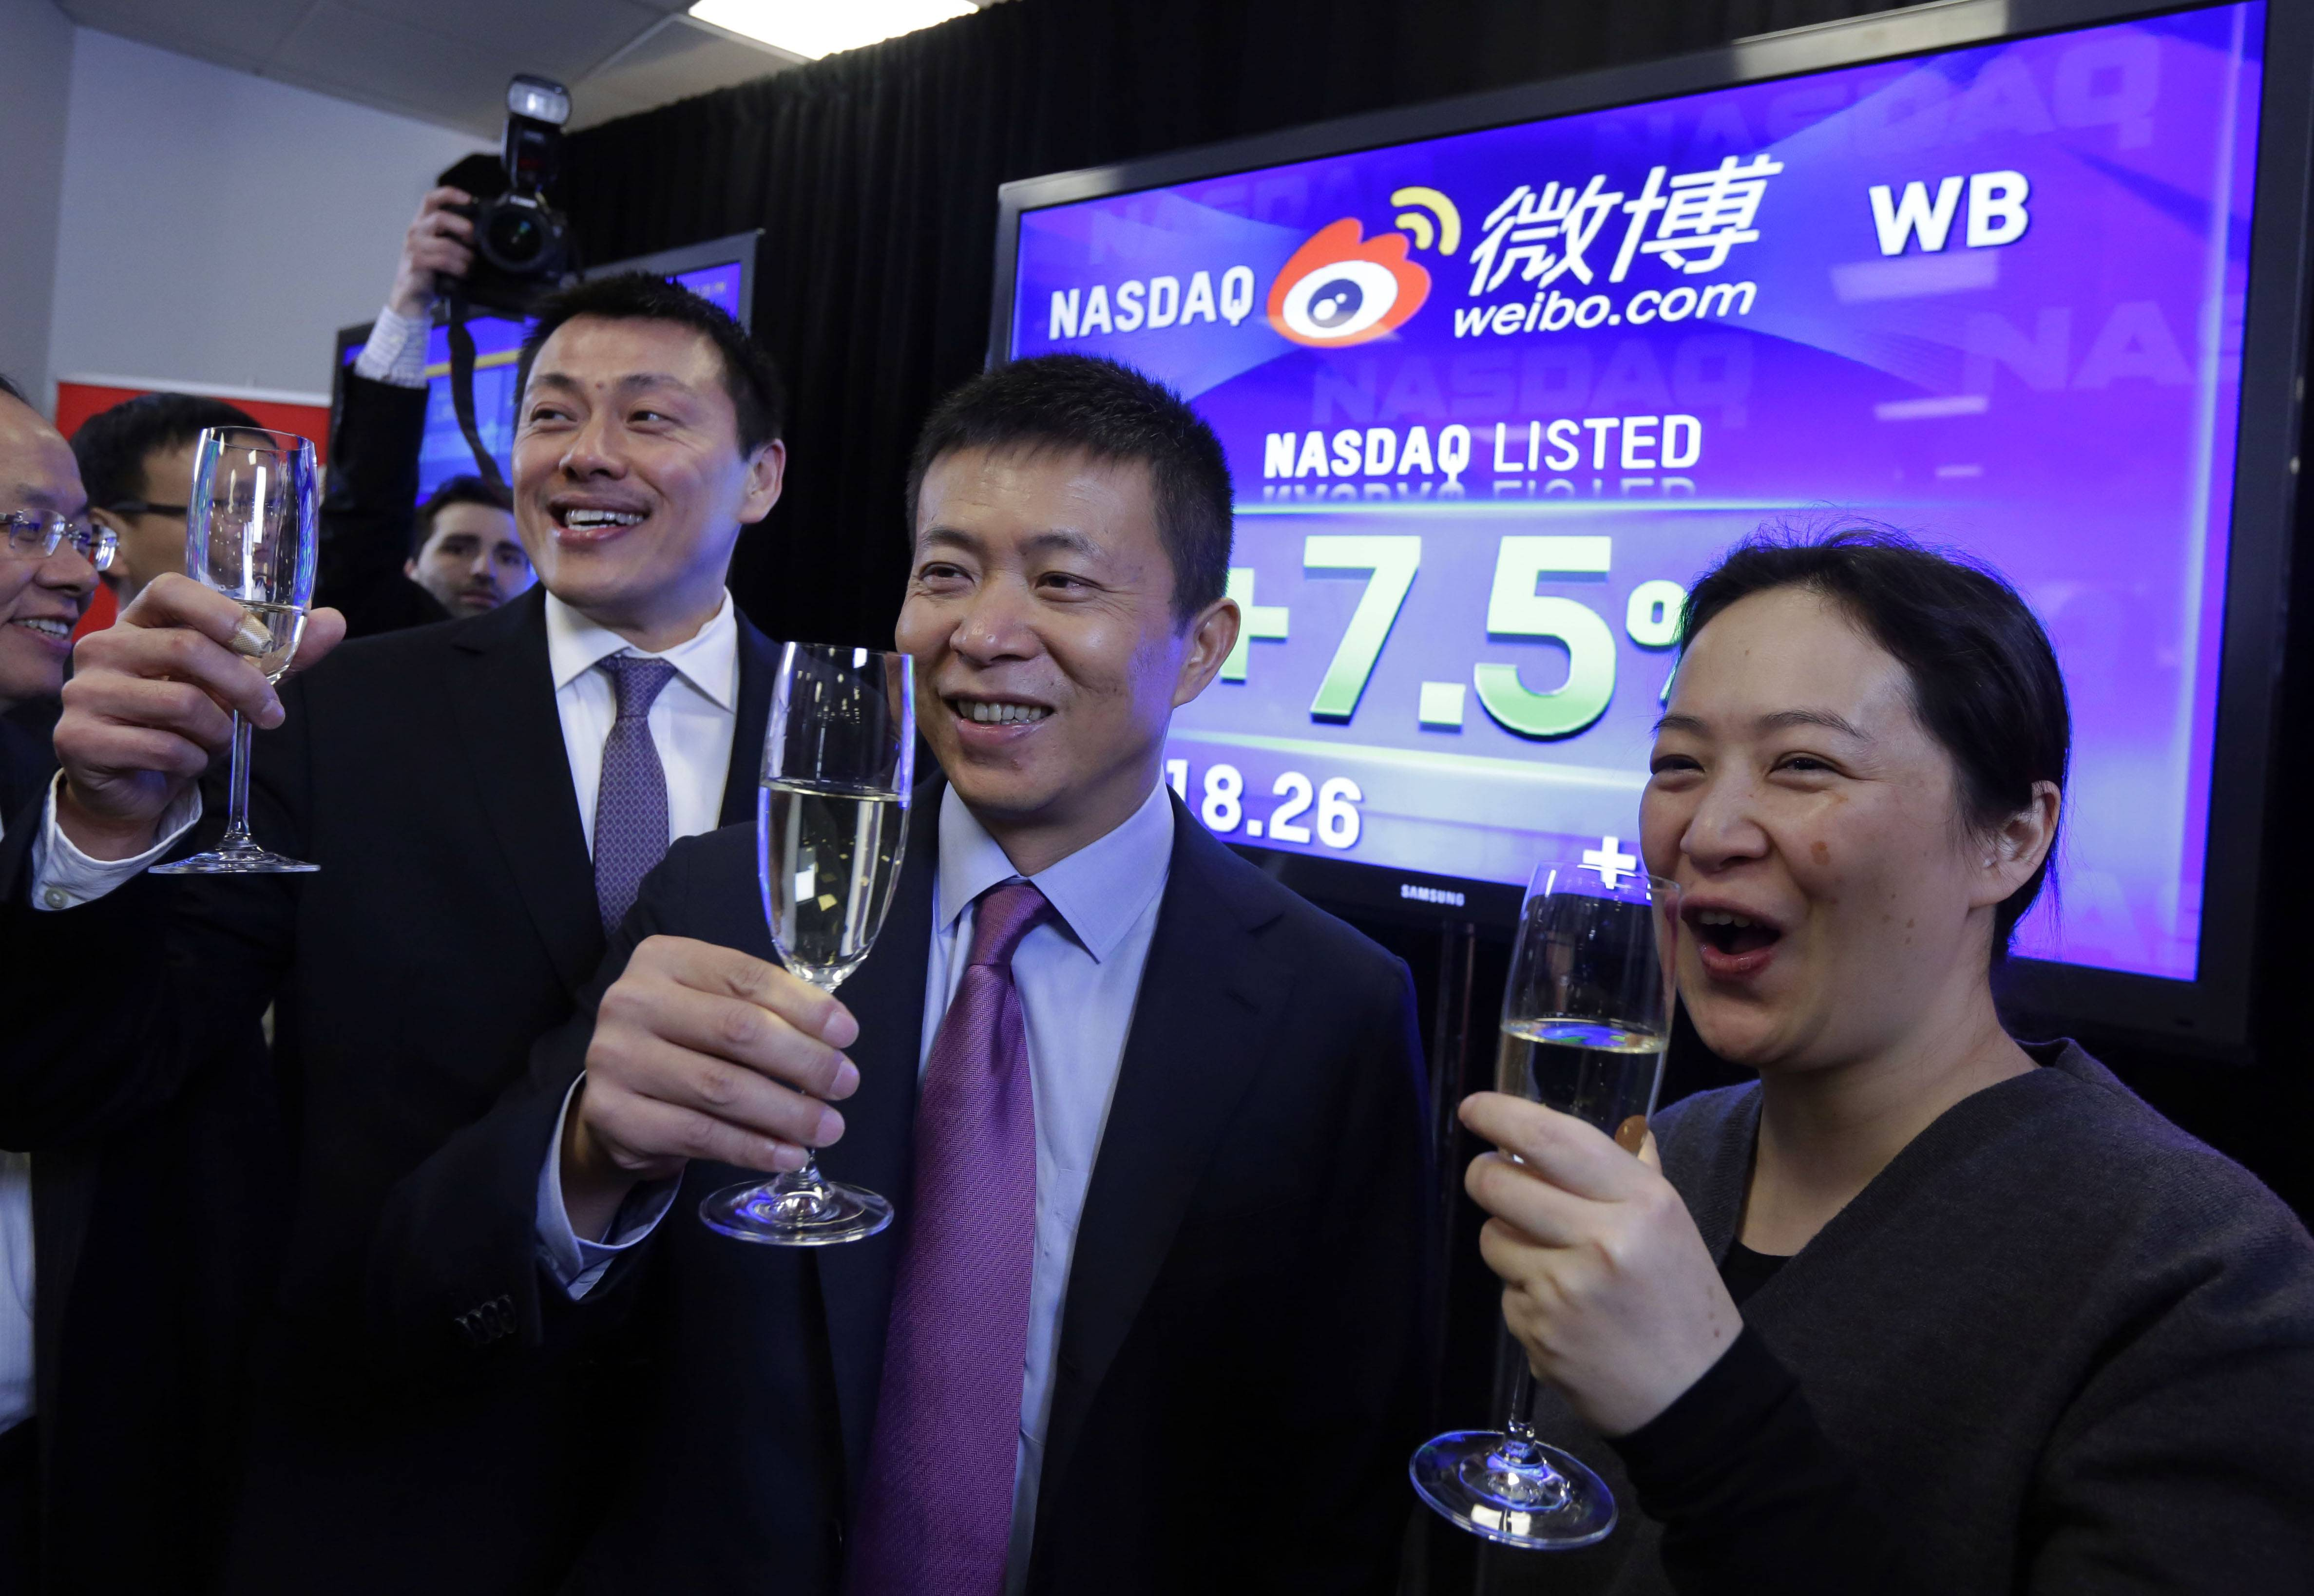 Weibo Corporation Chairman Charles Chao, center, is joined by company CFO Herman Yu, left, and Xiaoyin Zhang, of Goldman Sachs, as the Weibo's IPO begins trading, at the Nasdaq MarketSite, in New York, Thursday. Weibo provides a Twitter-like service that allows users to post up to 140 Chinese characters to share with others. Weibo has 61.4 million average daily active users, according to its filing with the SEC.